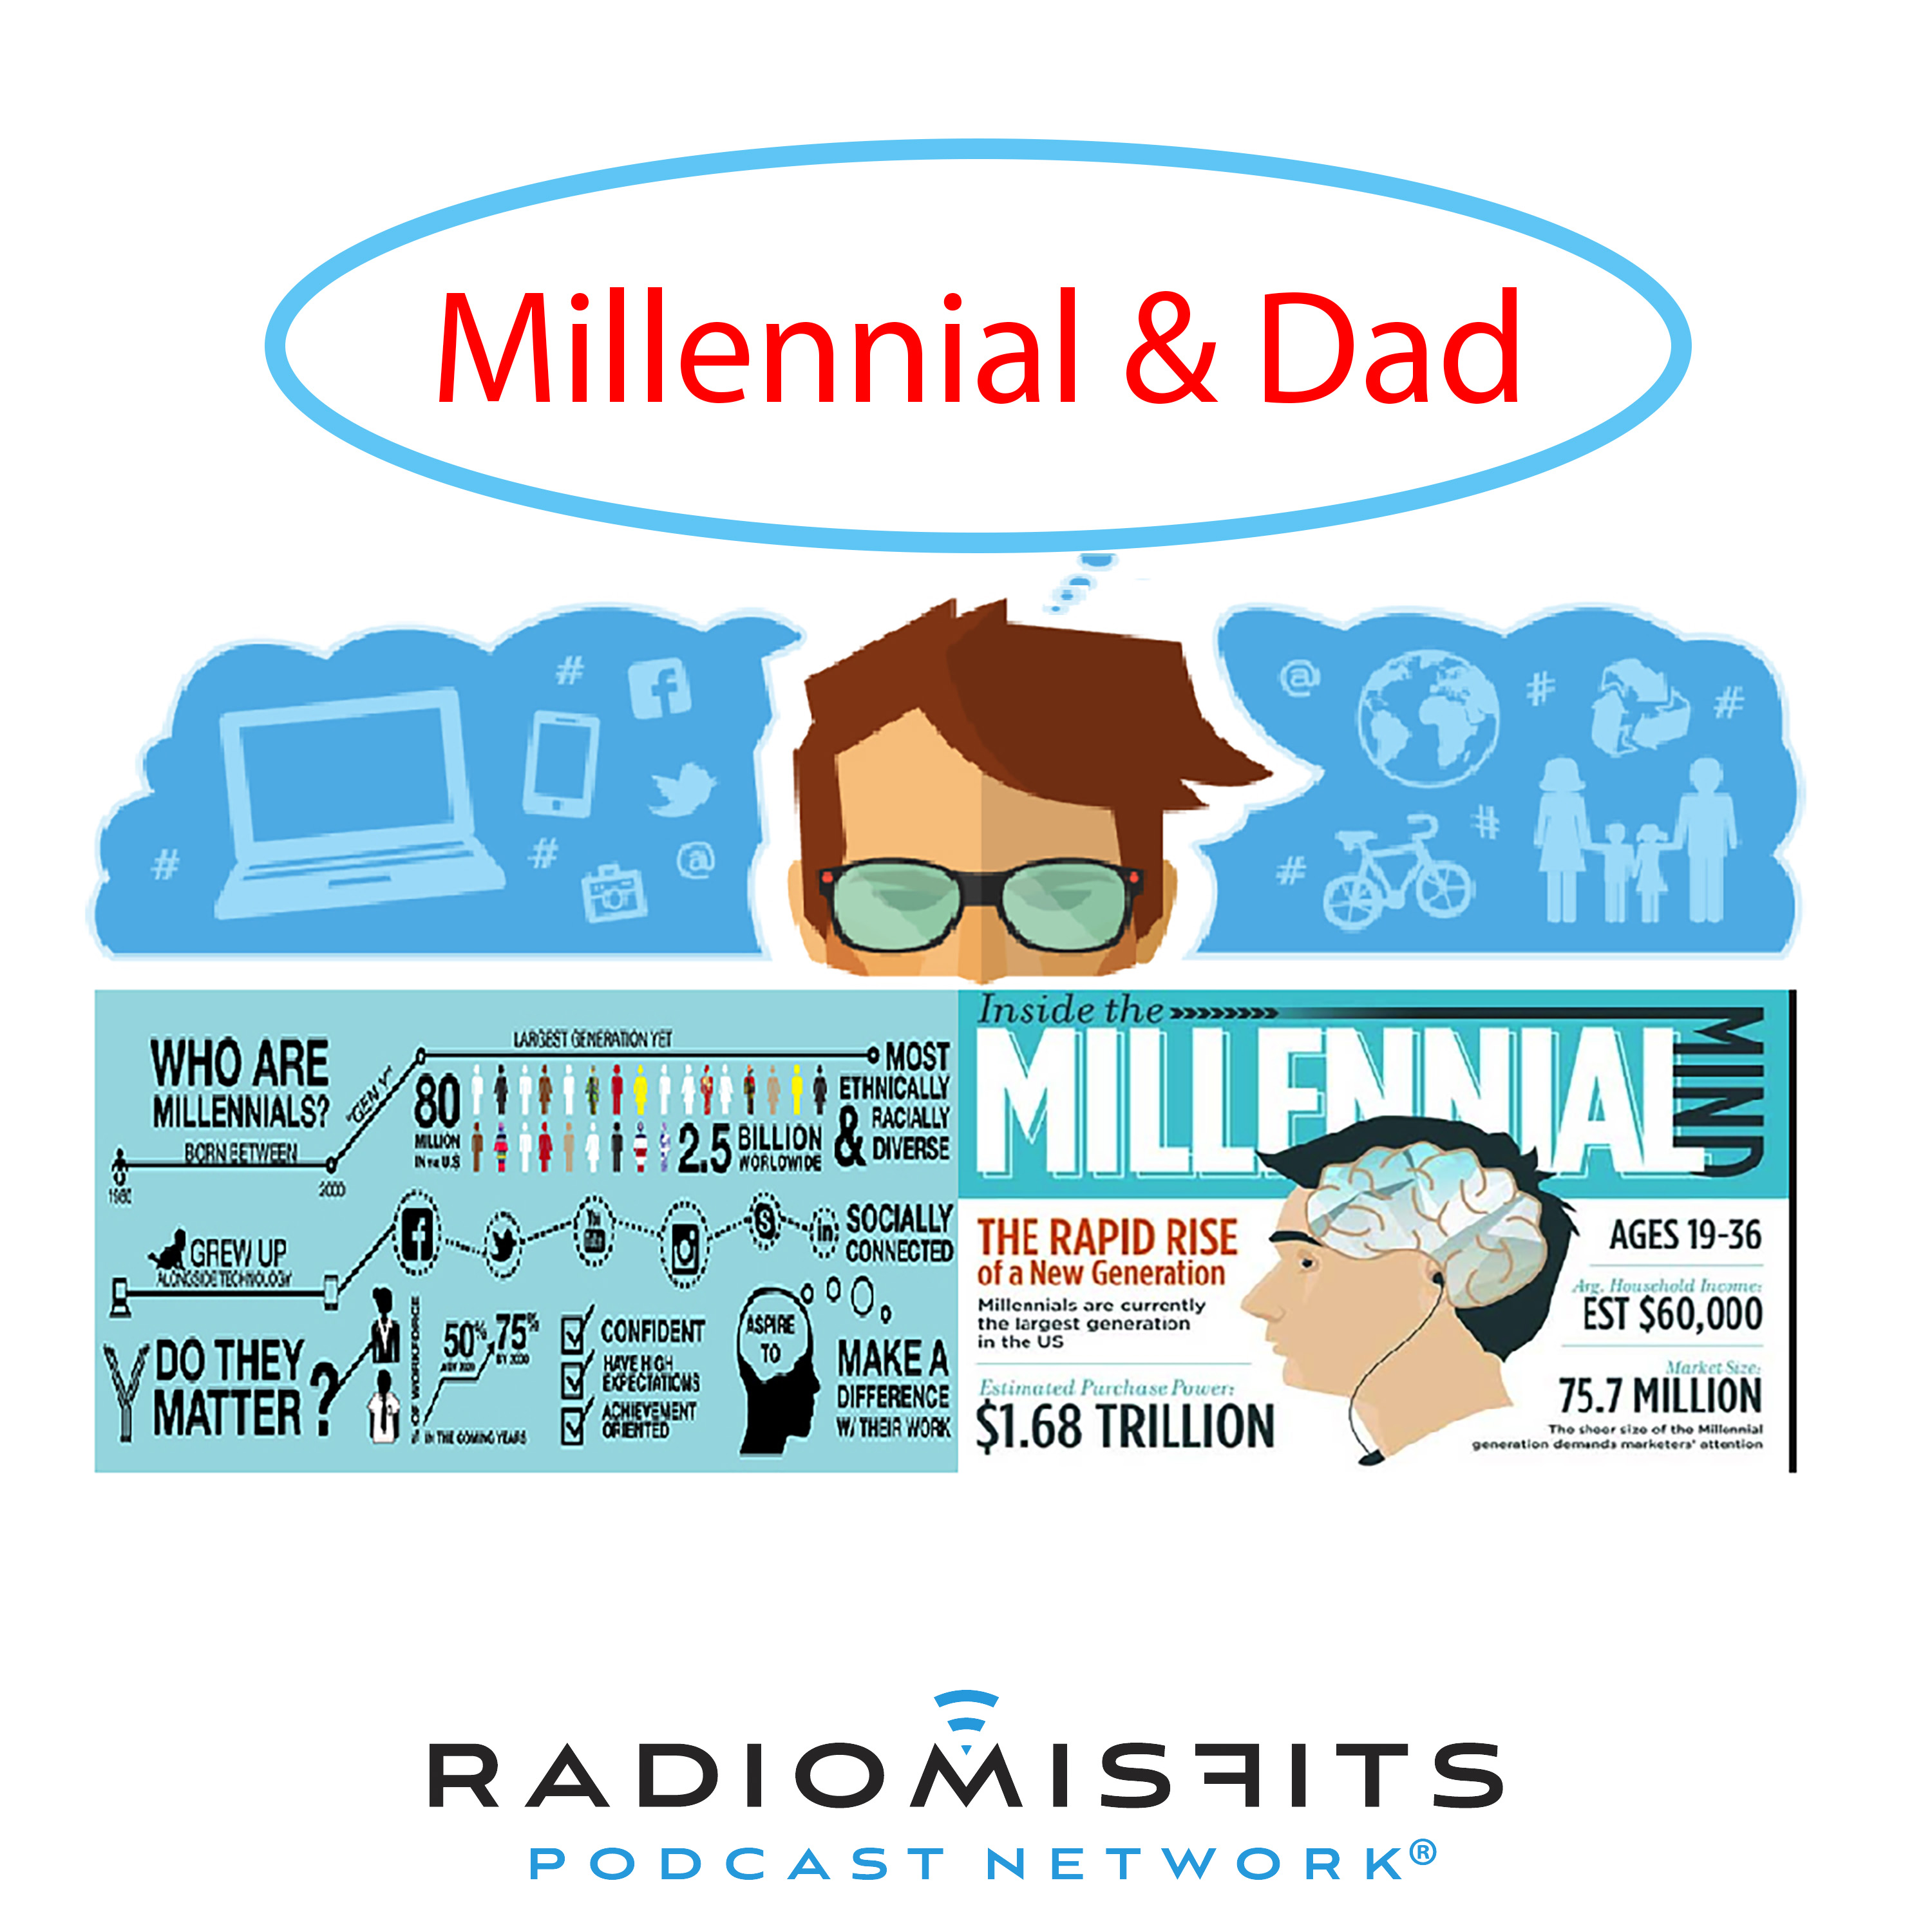 Millennial & Dad on Radio Misfits